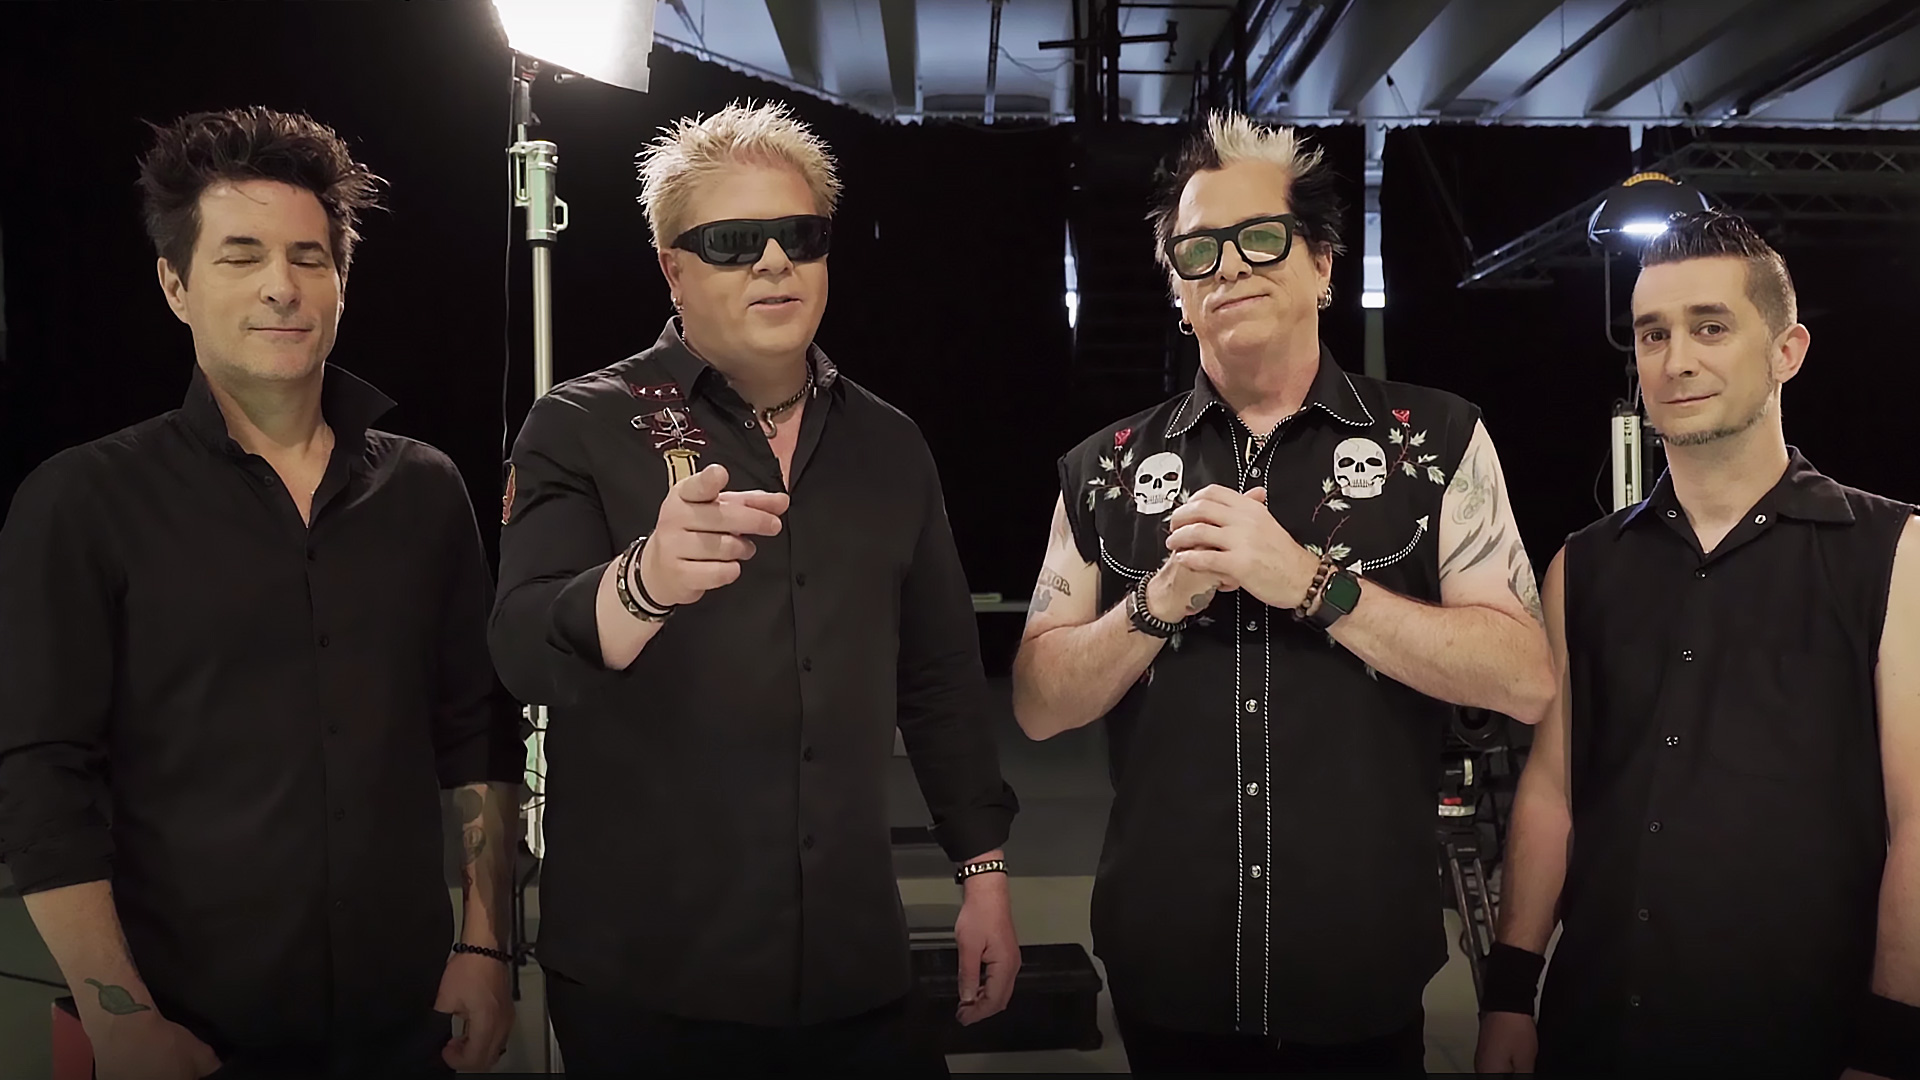 The Offspring are playing a gig inside World of Tanks